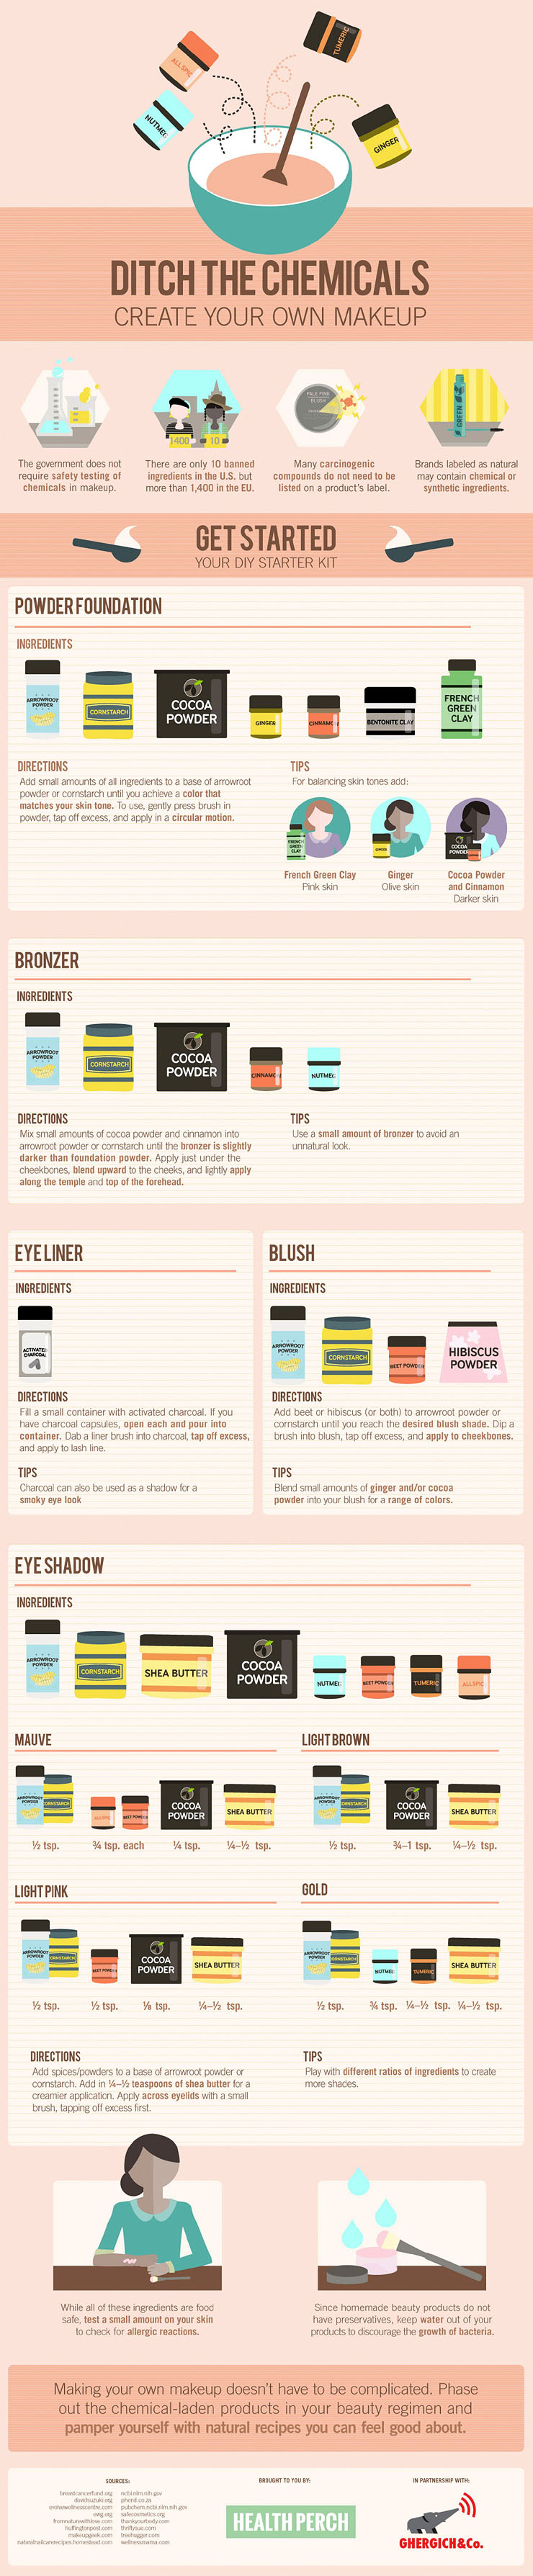 Make Your Own Chemical-Free Makeup Infographic